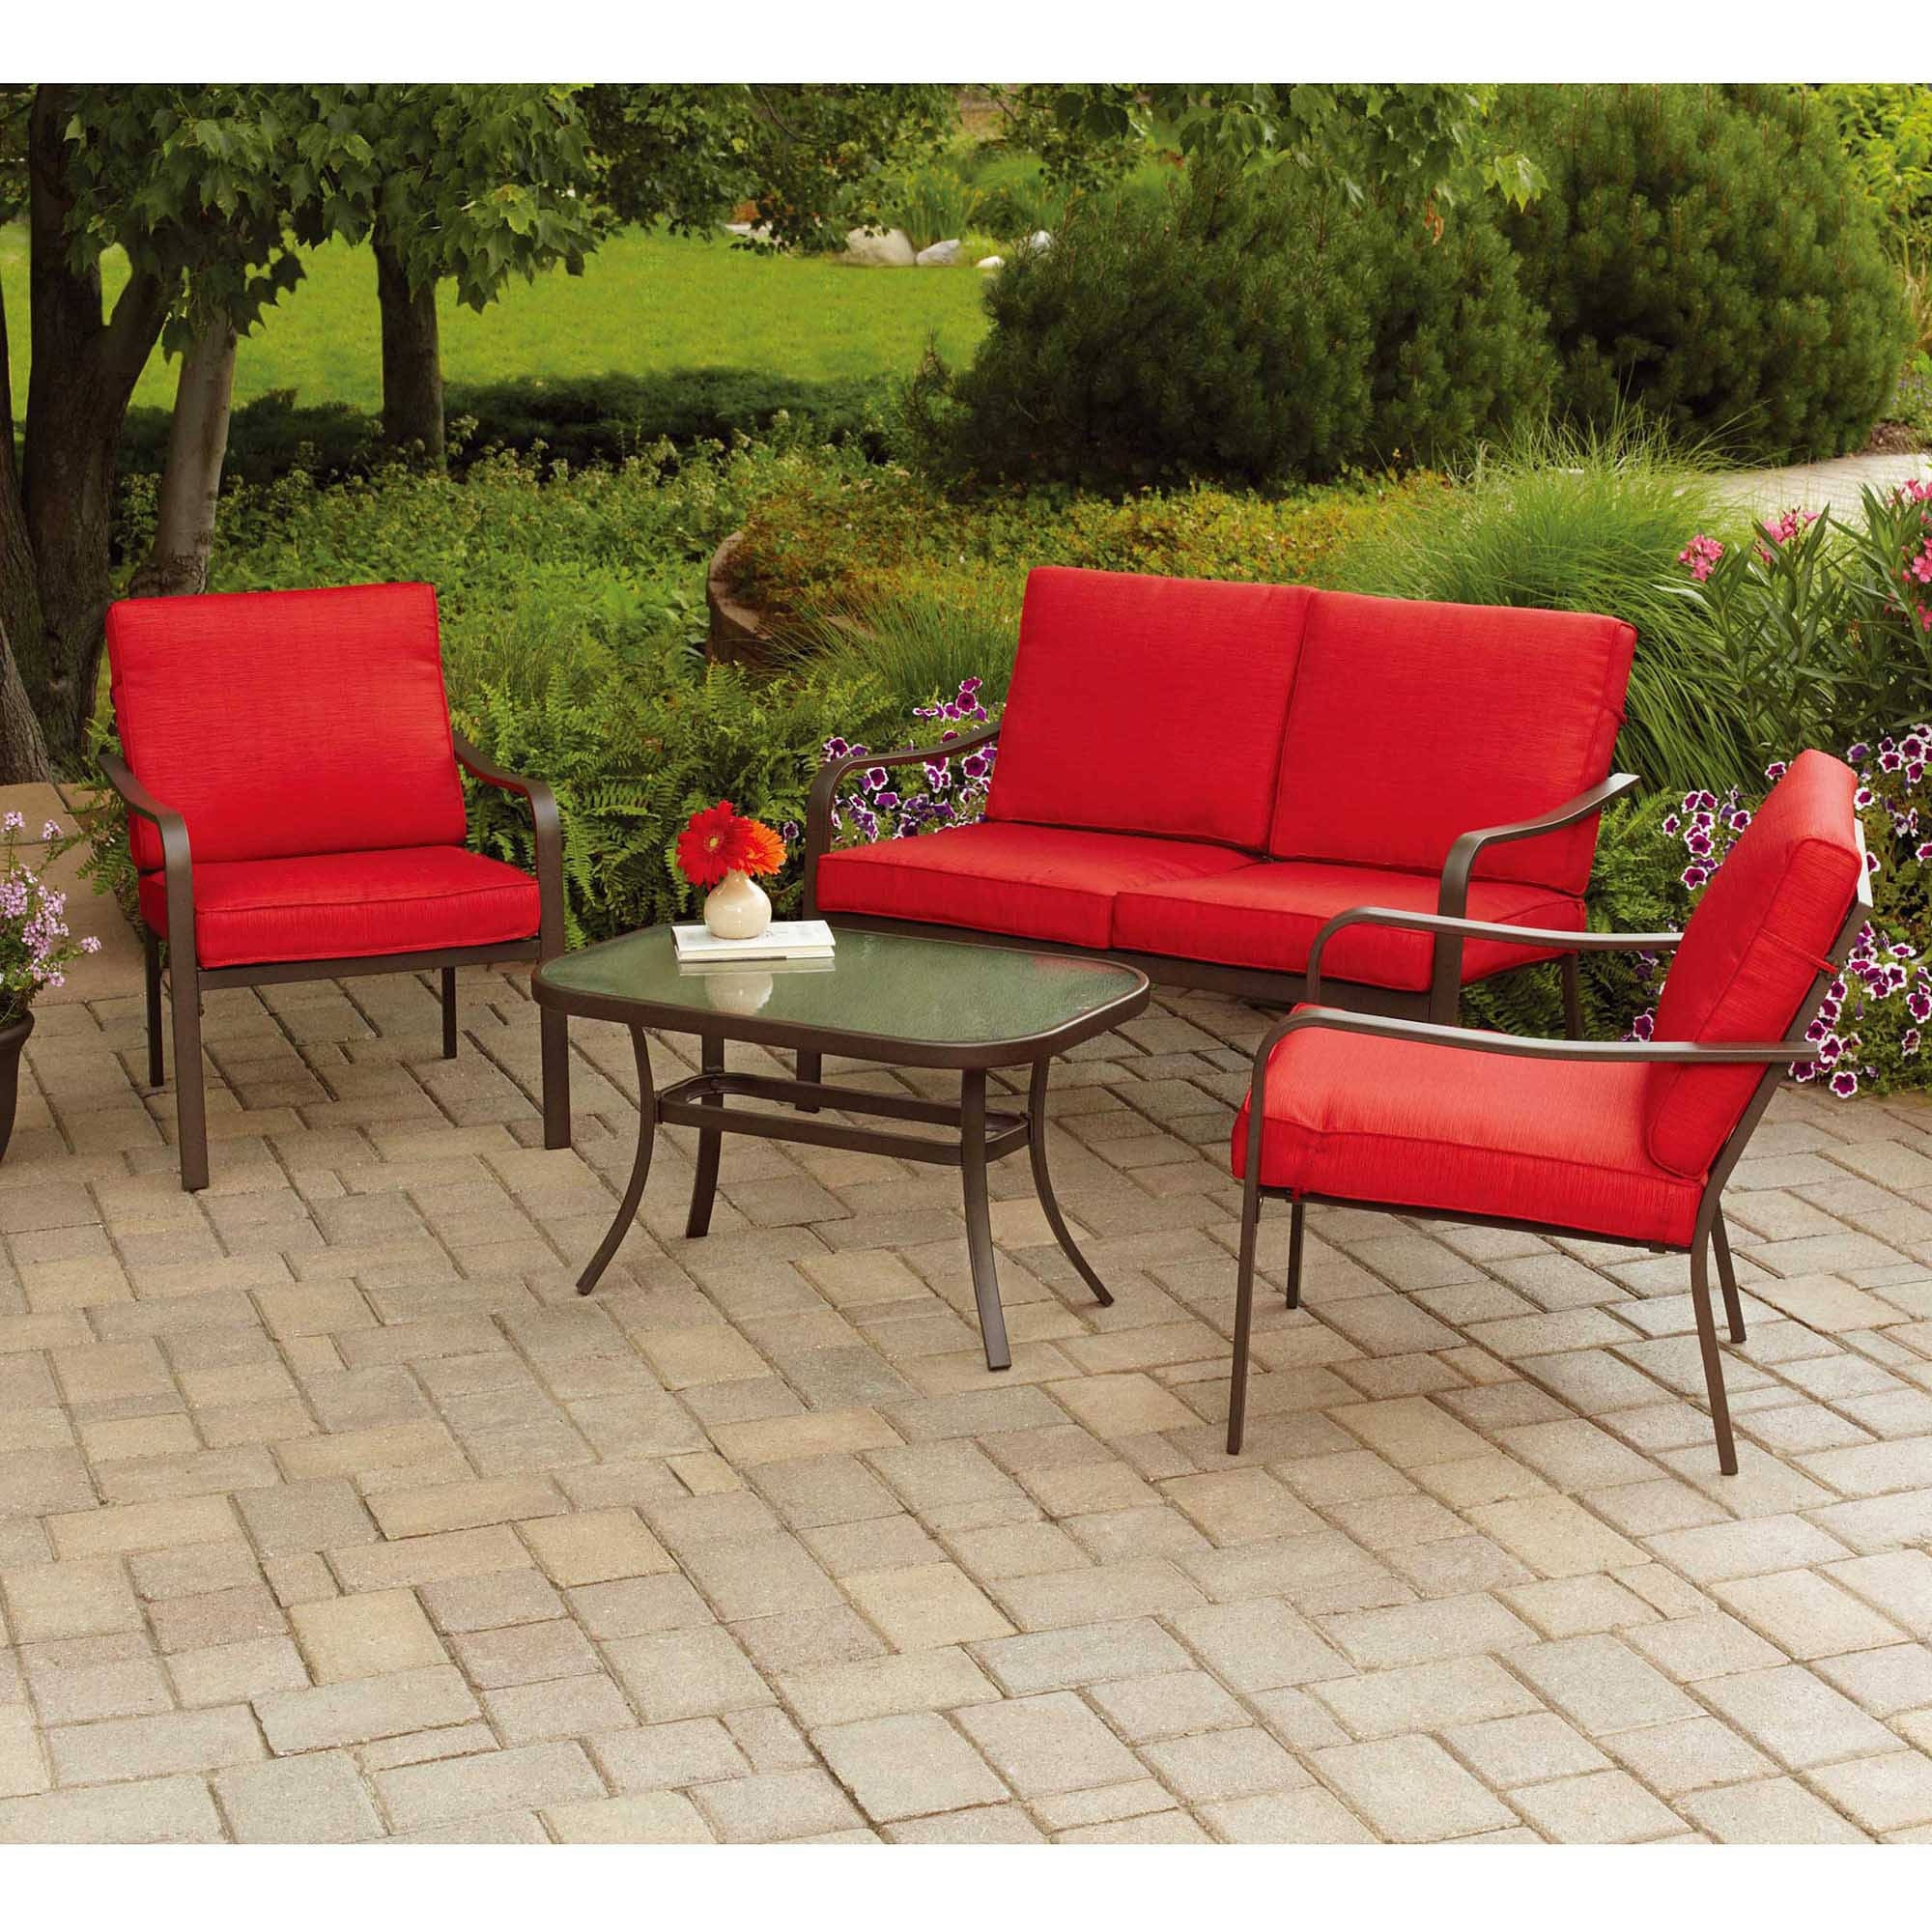 Most Up To Date Patio Conversation Sets With Cushions With Details About Mainstays Stanton Cushioned 4 Piece Patio Conversation Set, Seats (View 8 of 20)